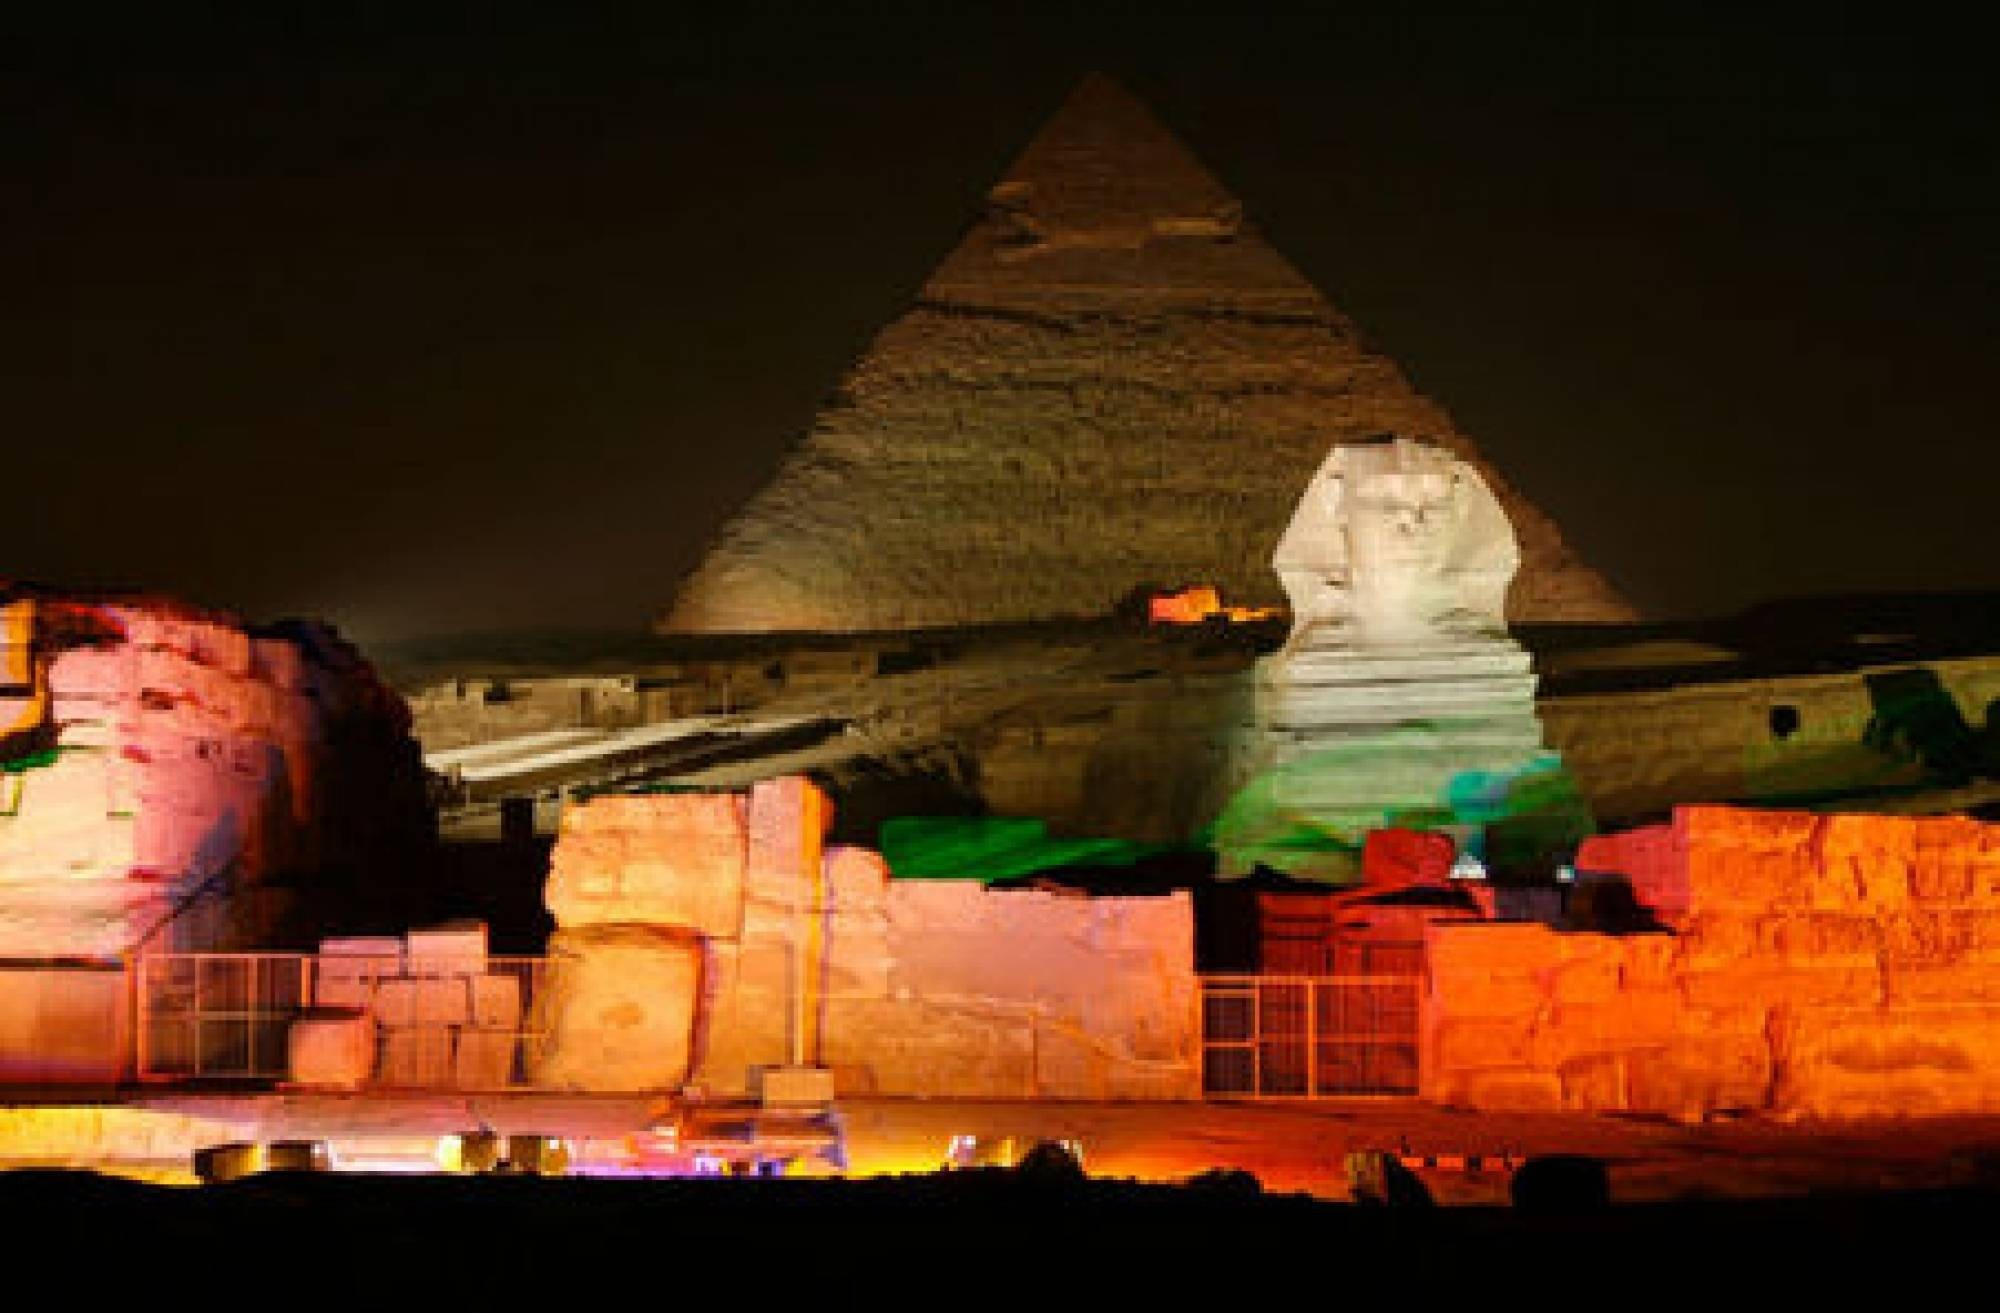 Sound And Light Show At The Giza Pyramids